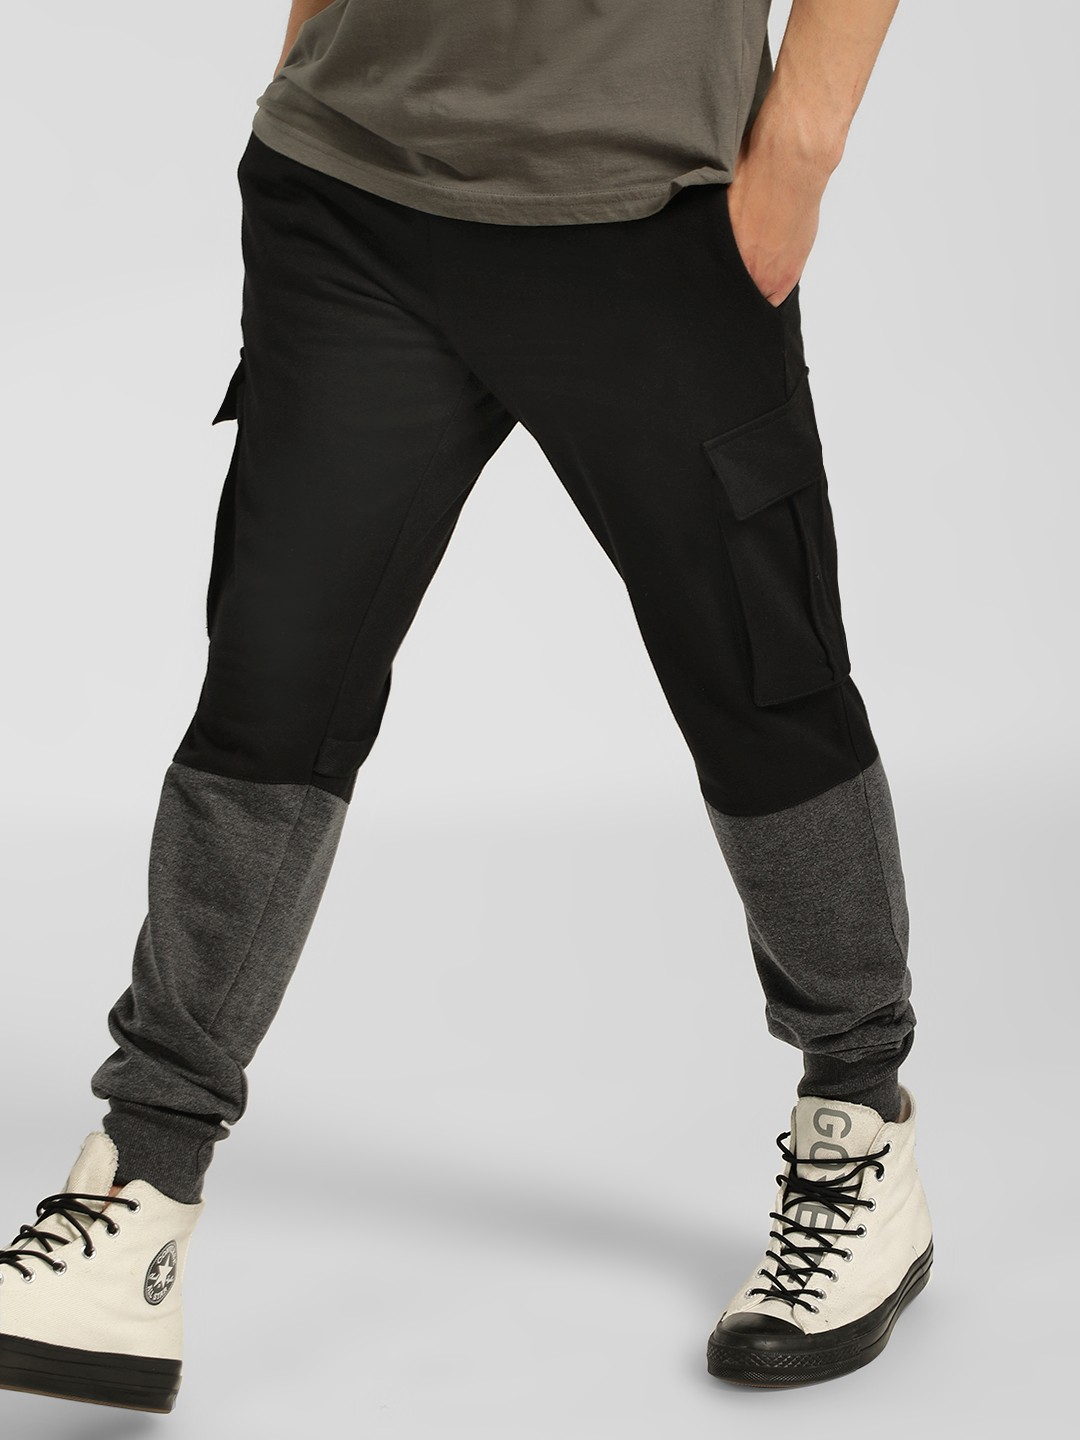 SKULT By Shahid Kapoor Black Colour Block Cargo Joggers 1